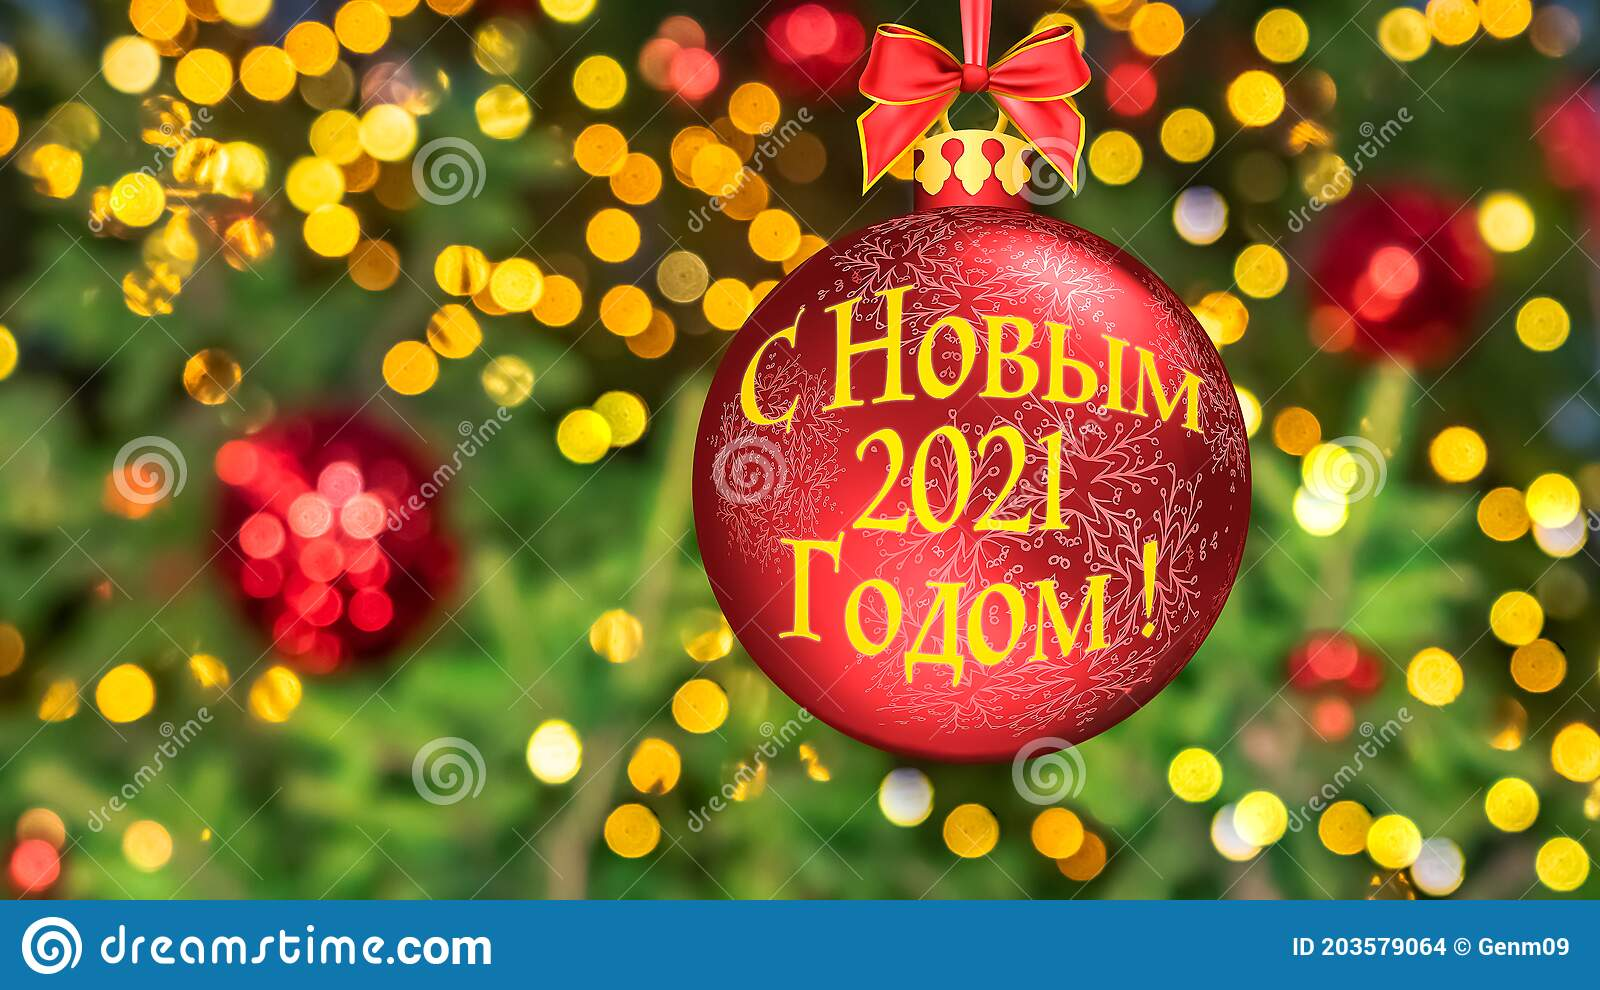 Russian Christmas For 2021 Happy New Year 2021 Text Written By Cyrillic In Russian Blurred Background Of Christmas Tree Decorated With Bright Golden Light Stock Photo Image Of Illumination Decorated 203579064